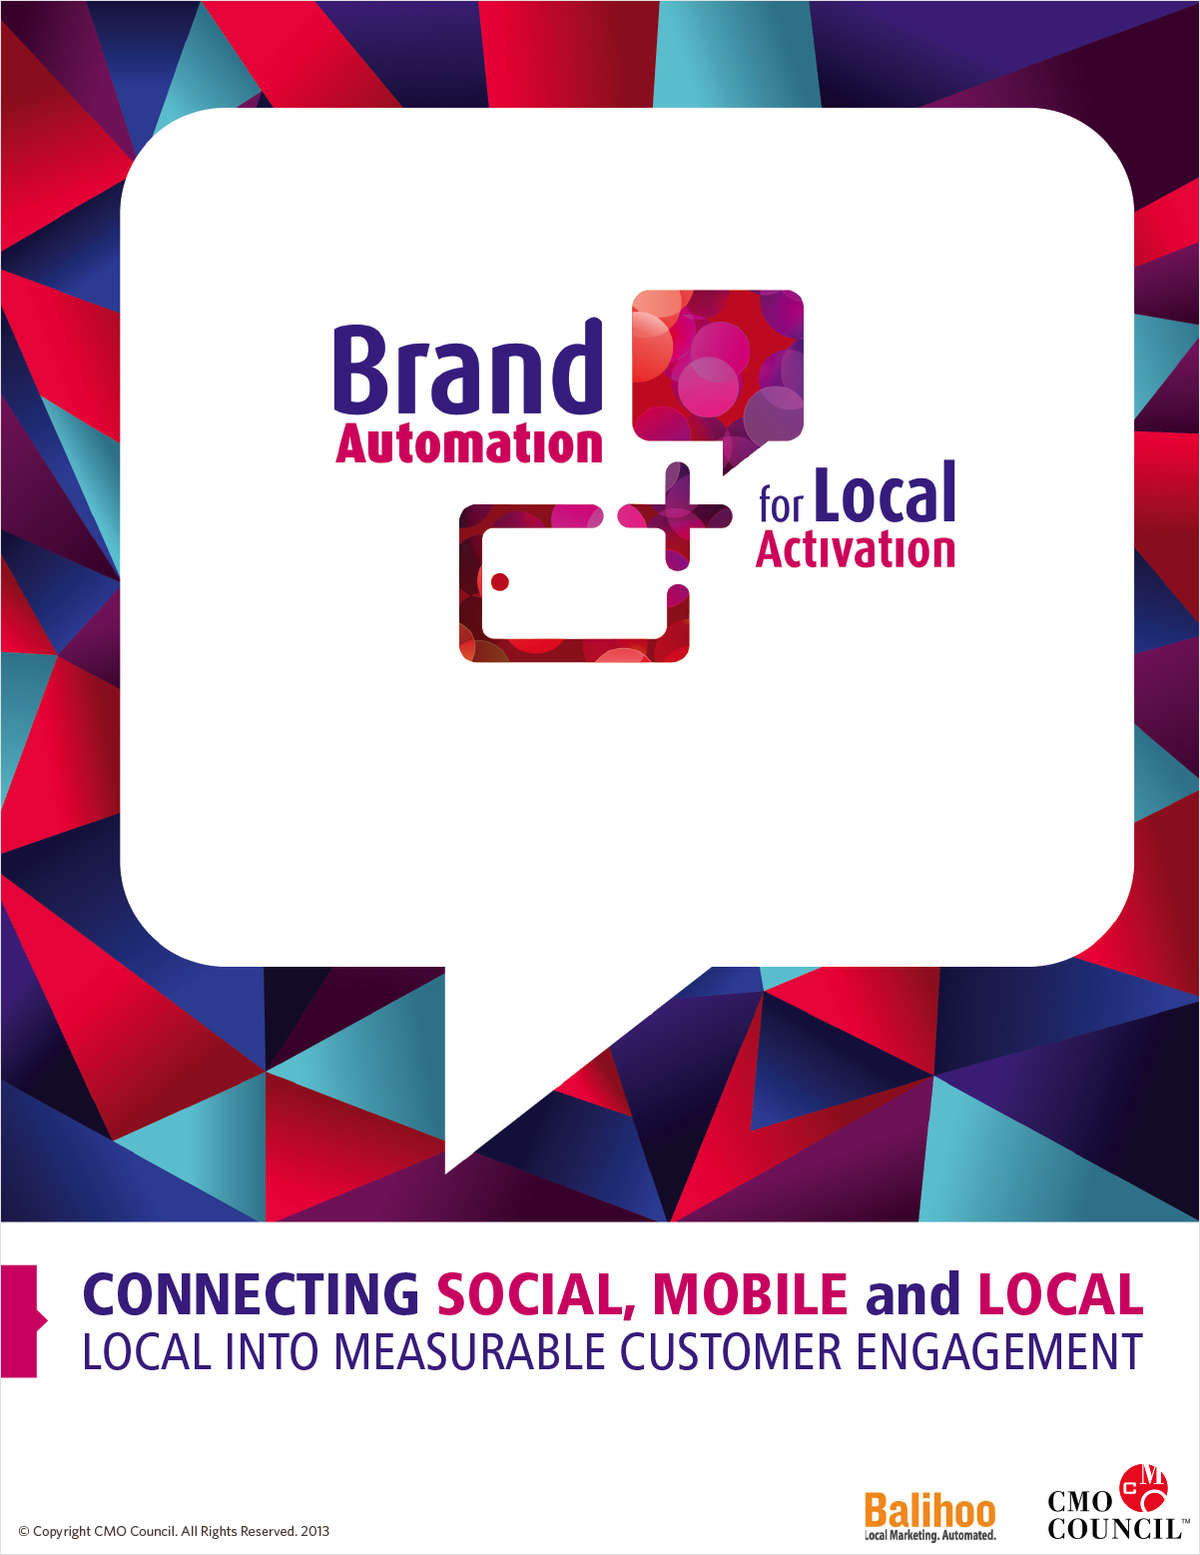 Brand Automation for Local Activation: Connecting Customer Engagement Into Measurable Local Strategies